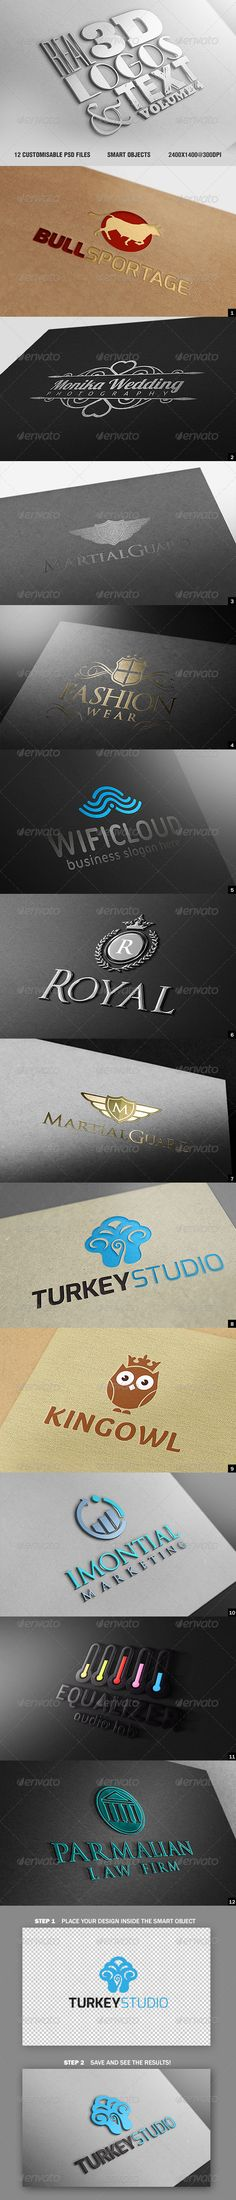 110 best 3d typography images on pinterest 3d typography real 3d logos and text vol4 reheart Choice Image